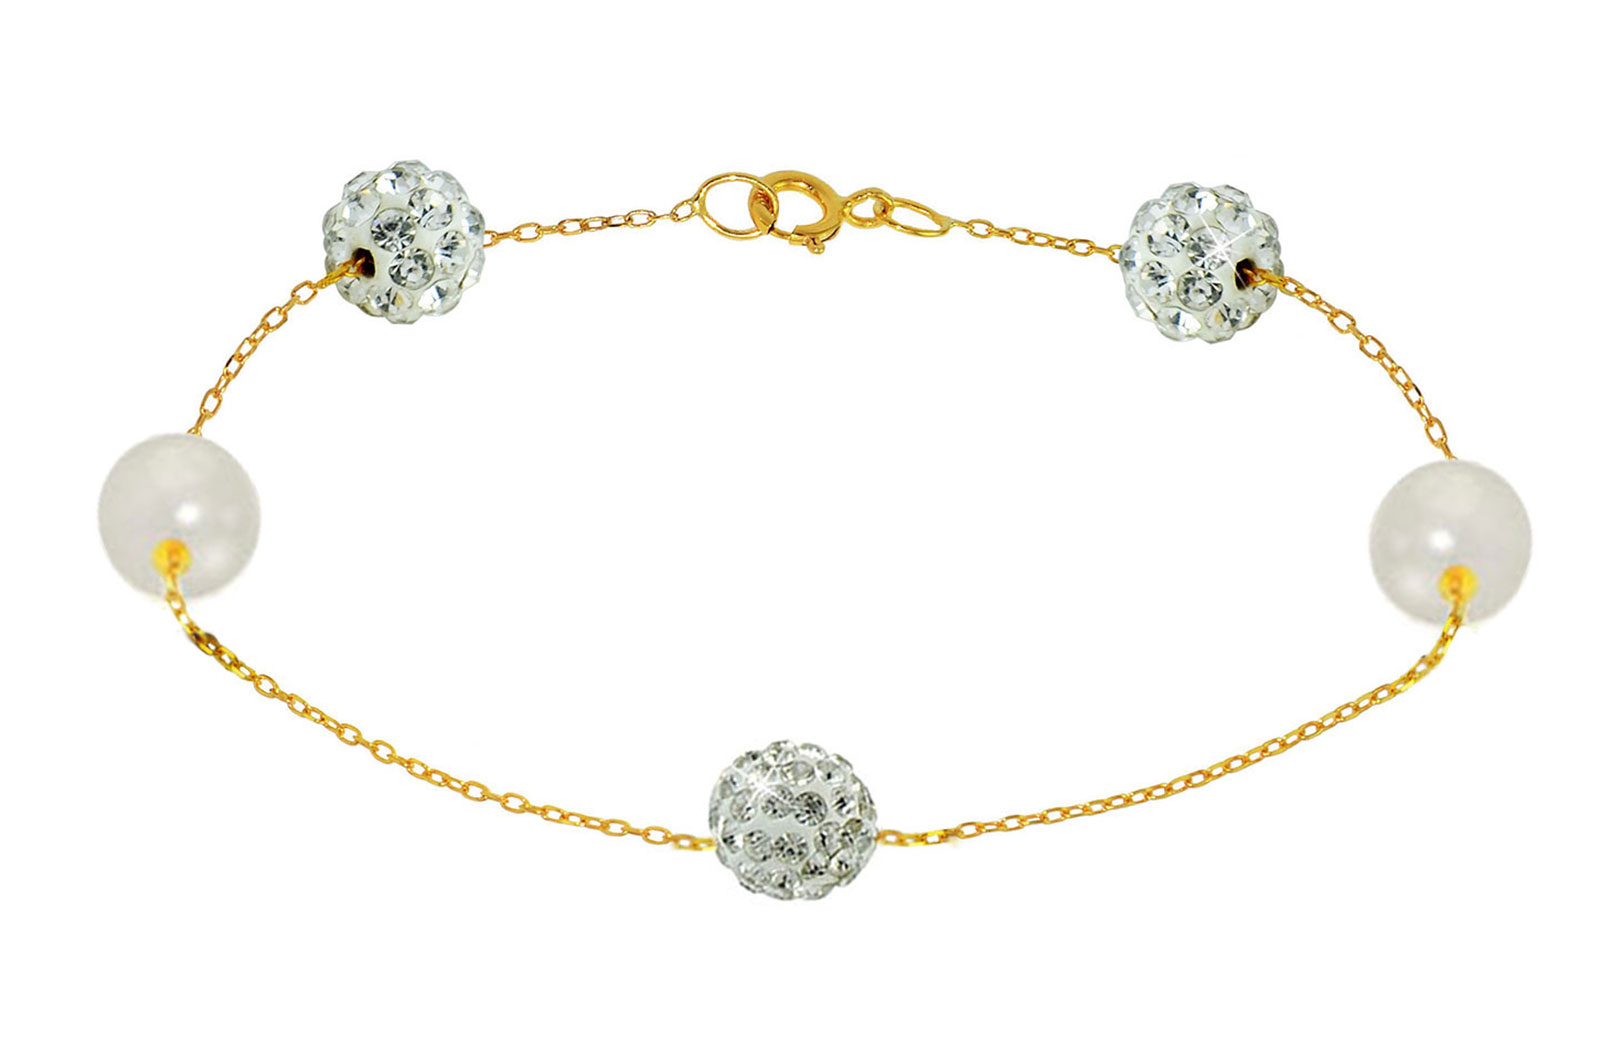 Vera Perla 18K Solid Gold Gradual Built-in 5-6mm Crystal Ball and White Pearls Bracelet